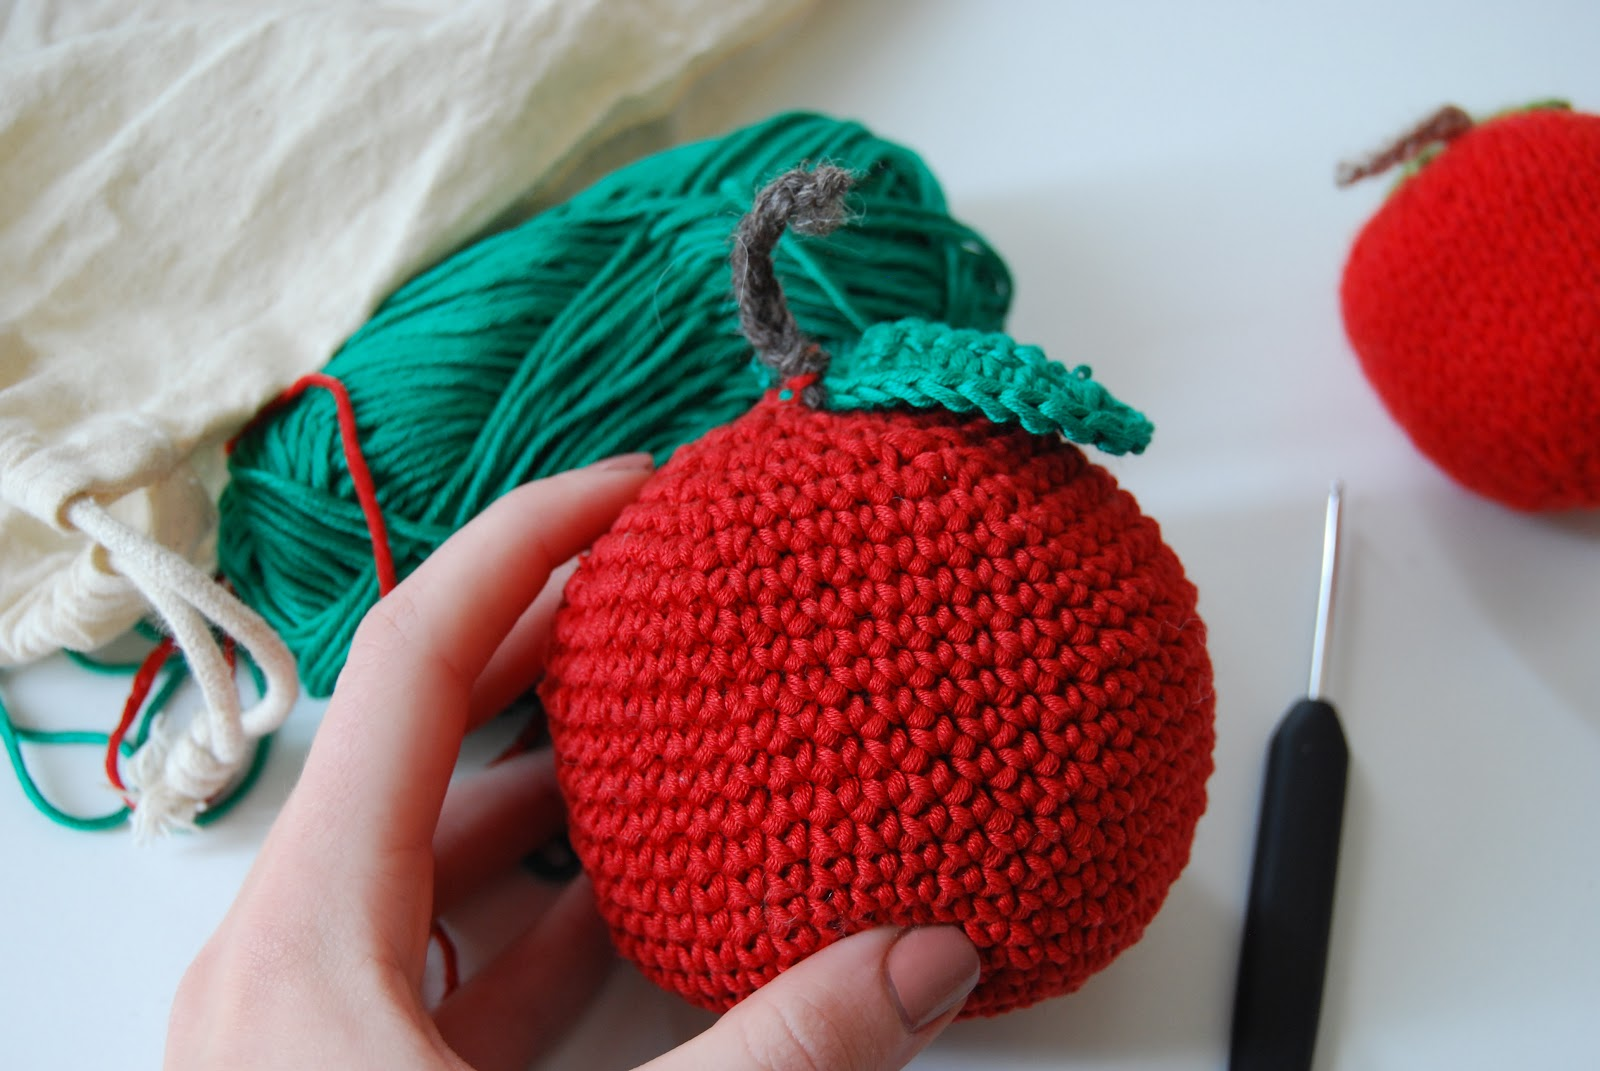 The New Craft House Crochet Apple Pattern For #LiveColourful